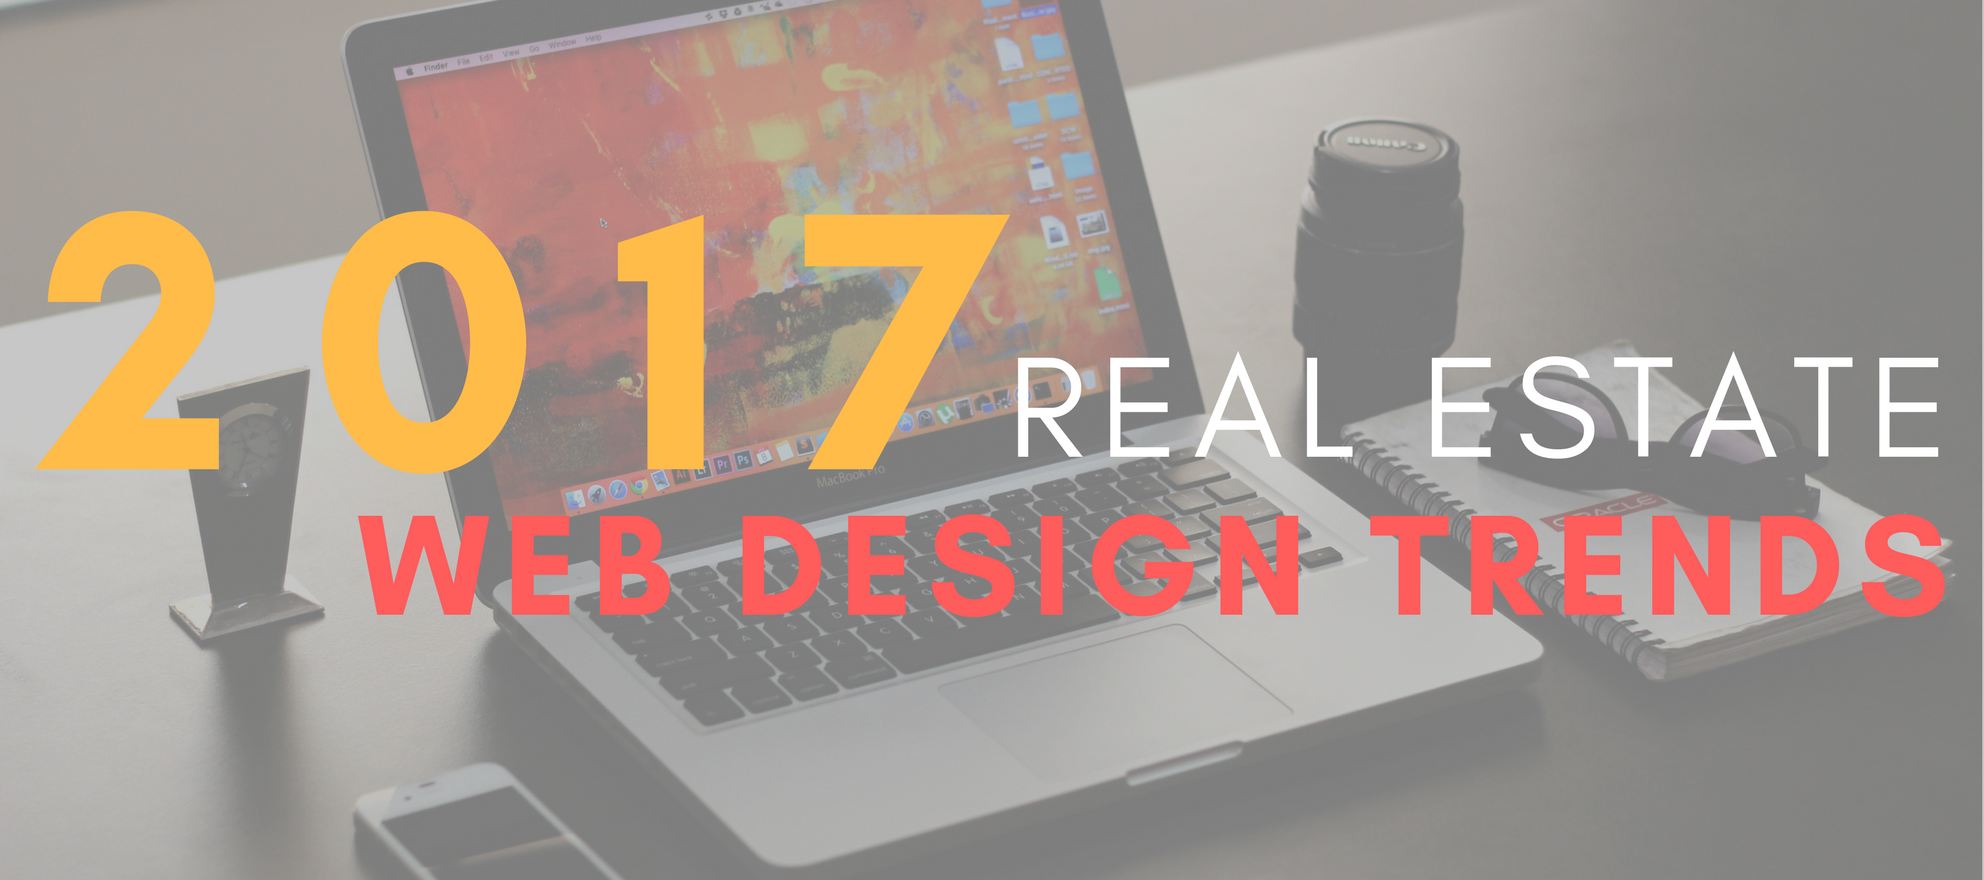 real estate web design trends 2017